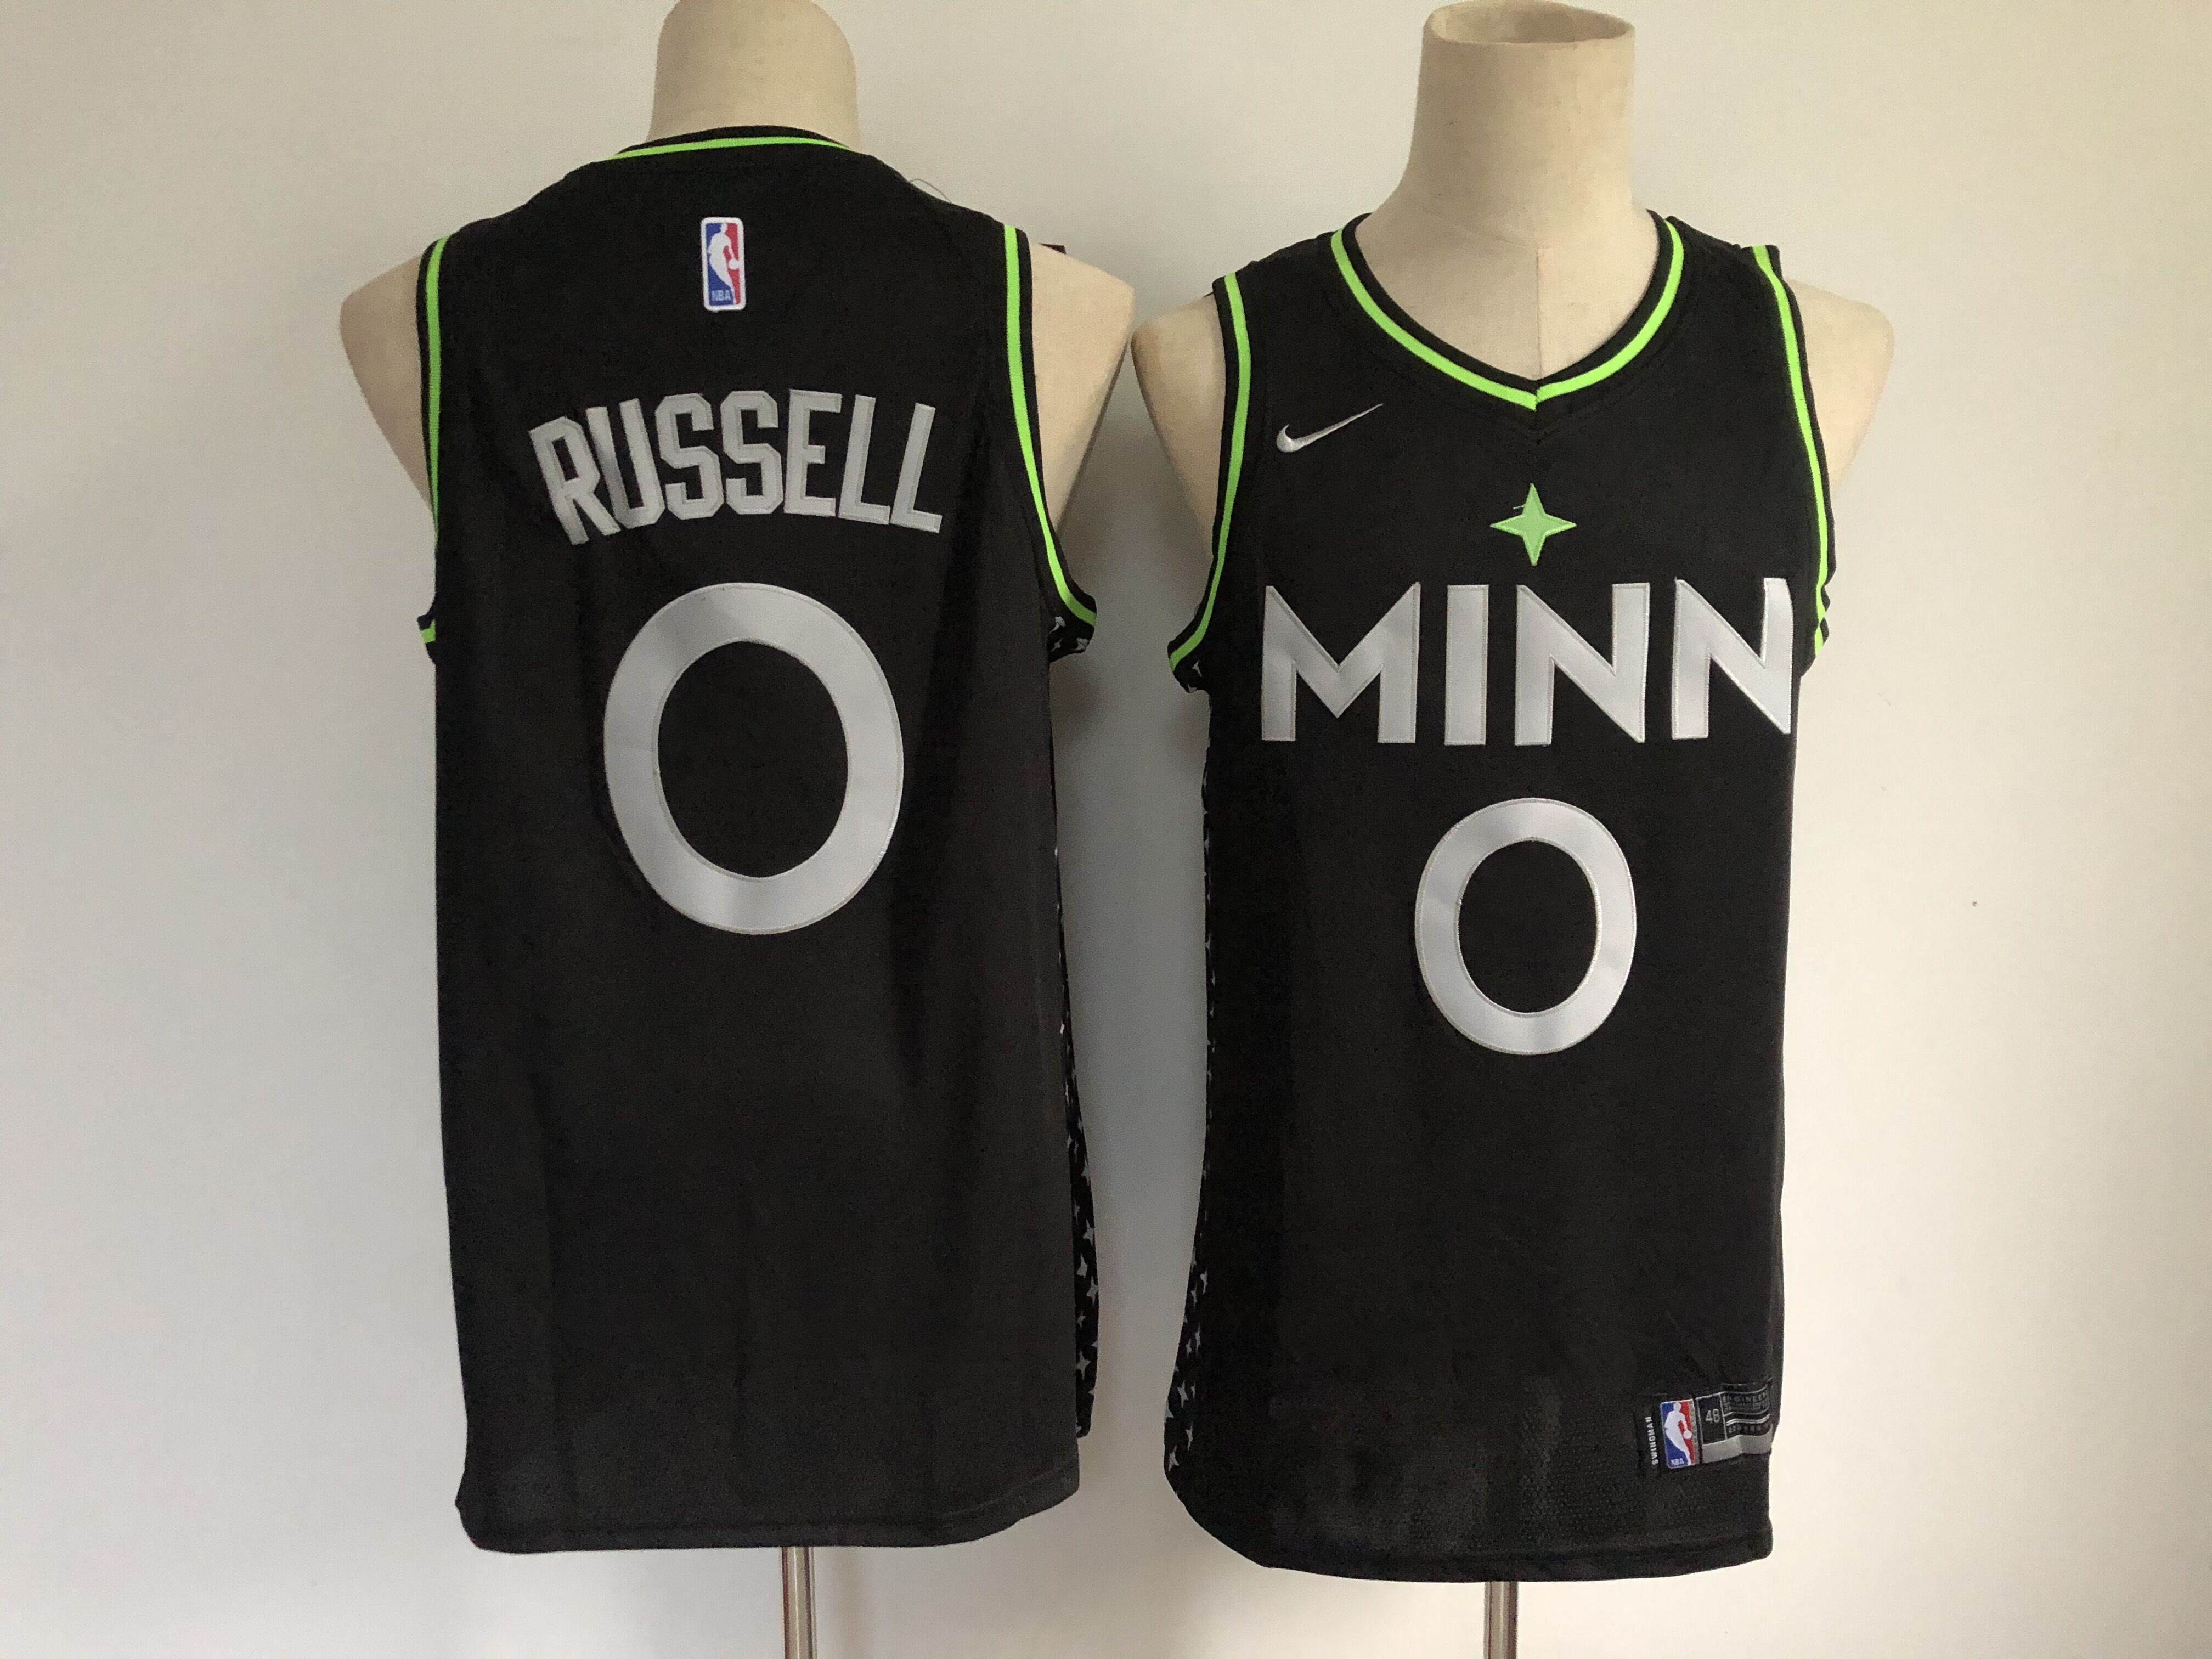 Men's Minnesota Timberwolves #0 D'Angelo Russell Black 2021 Nike City Edition Swingman Stitched NBA Jersey